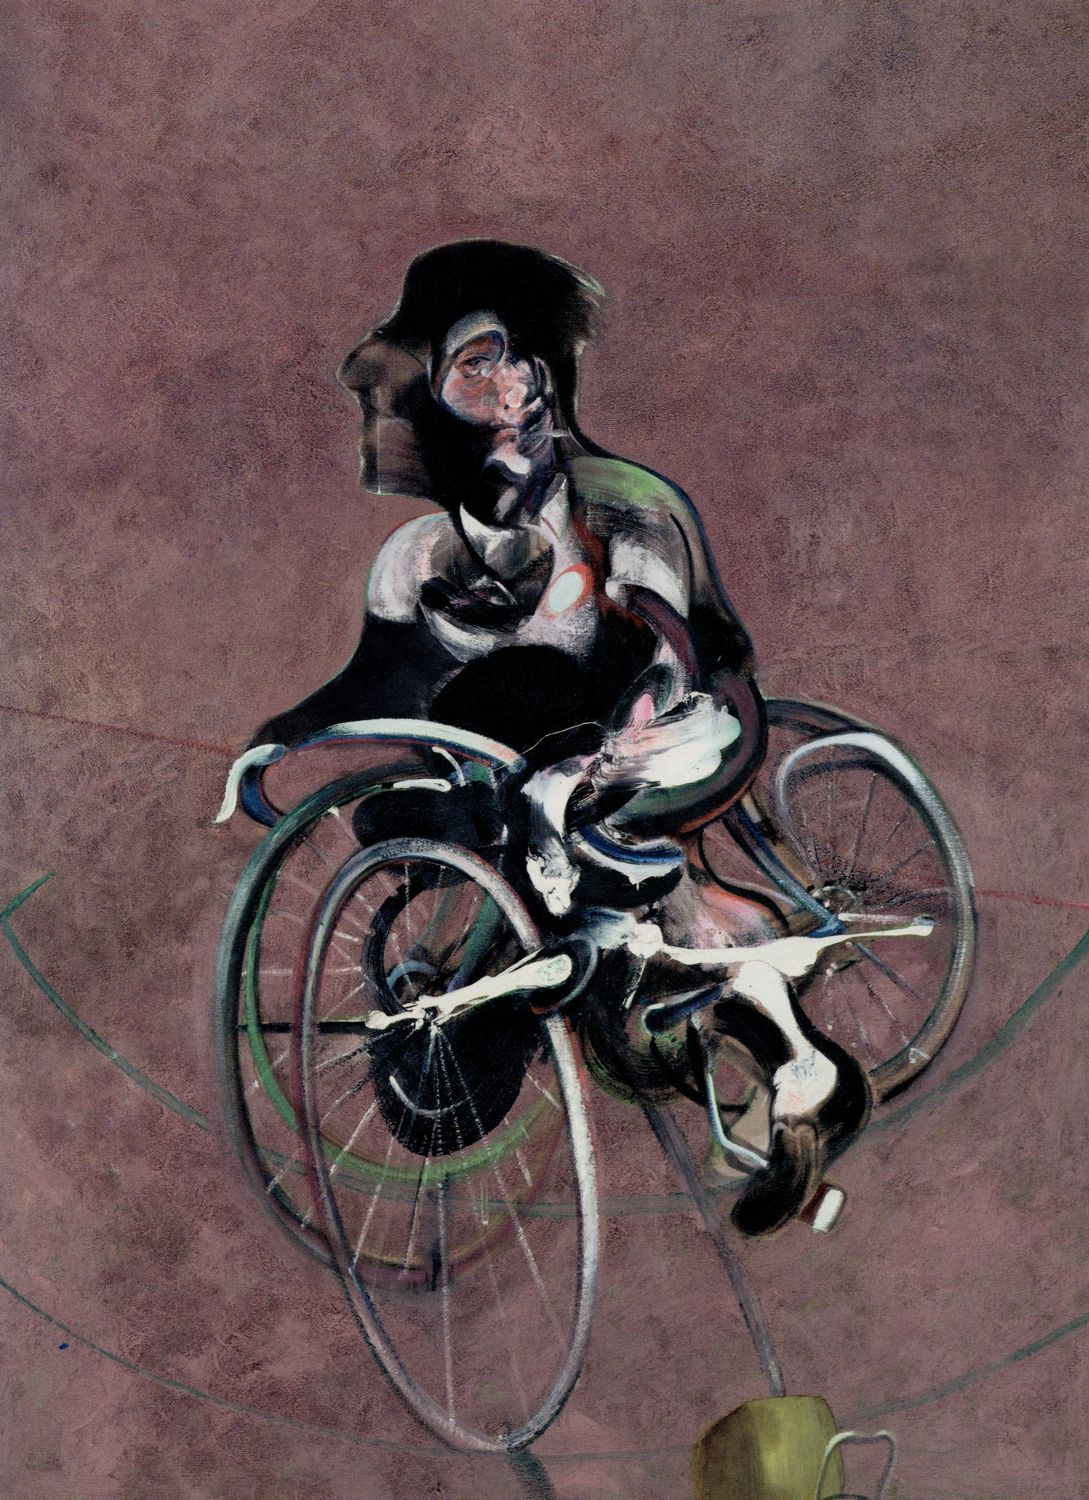 George Dyer Riding a Bicycle (1966), Francis Bacon